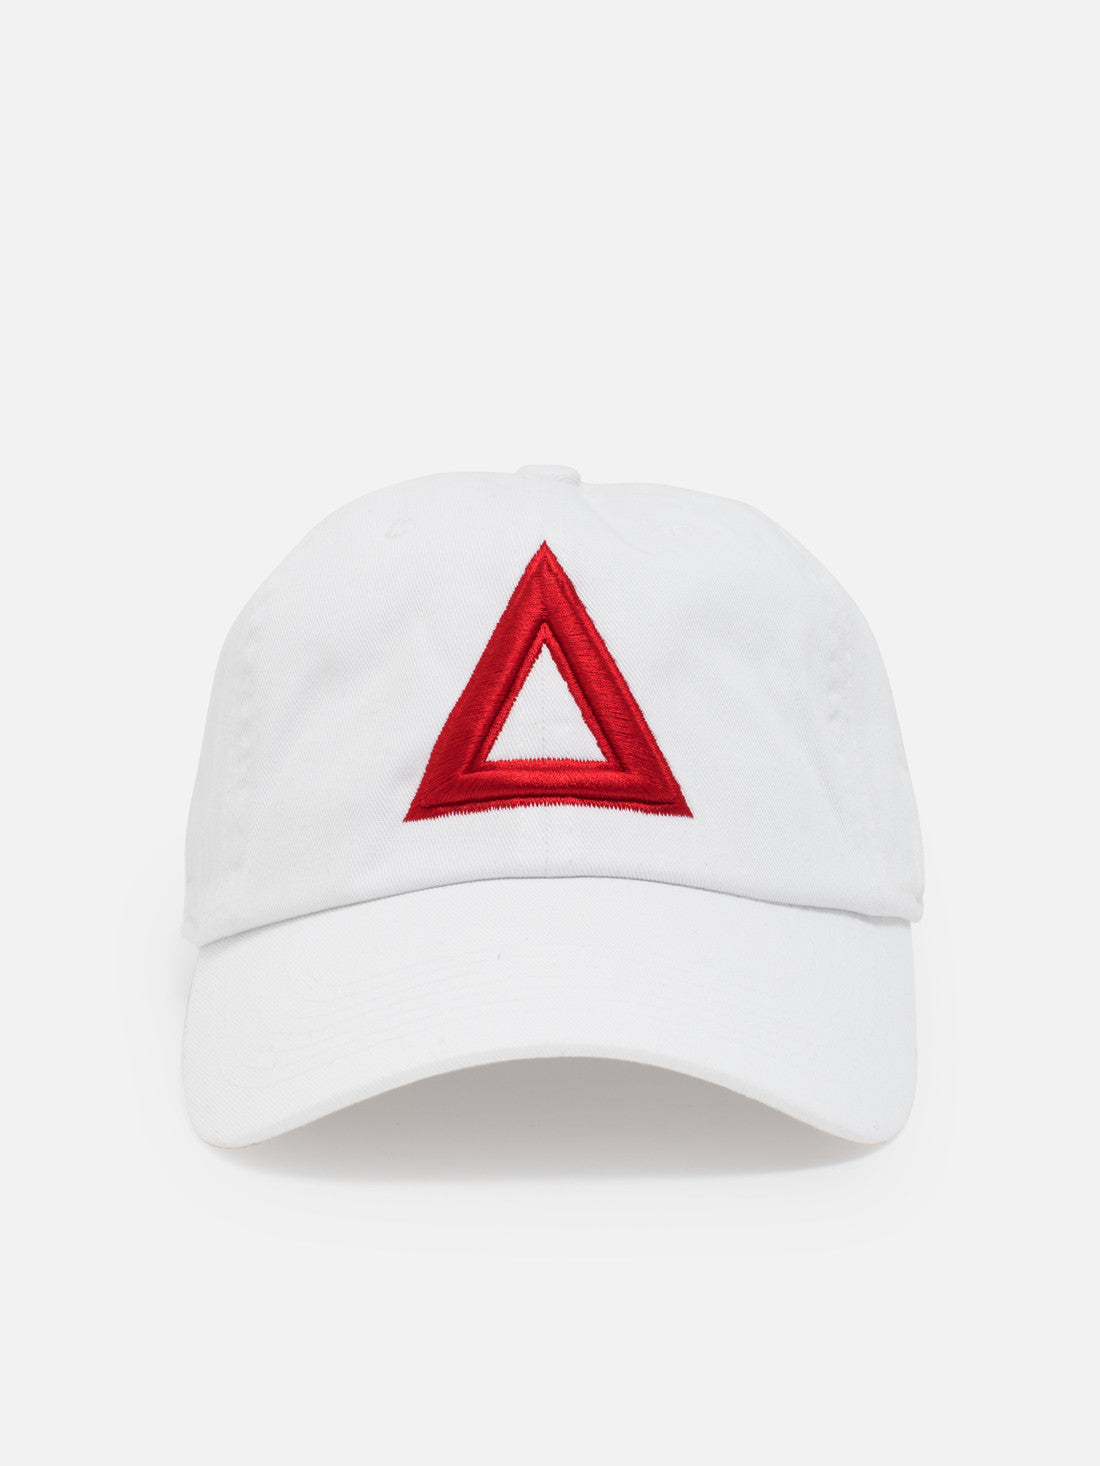 Dad hat White - Red Tri